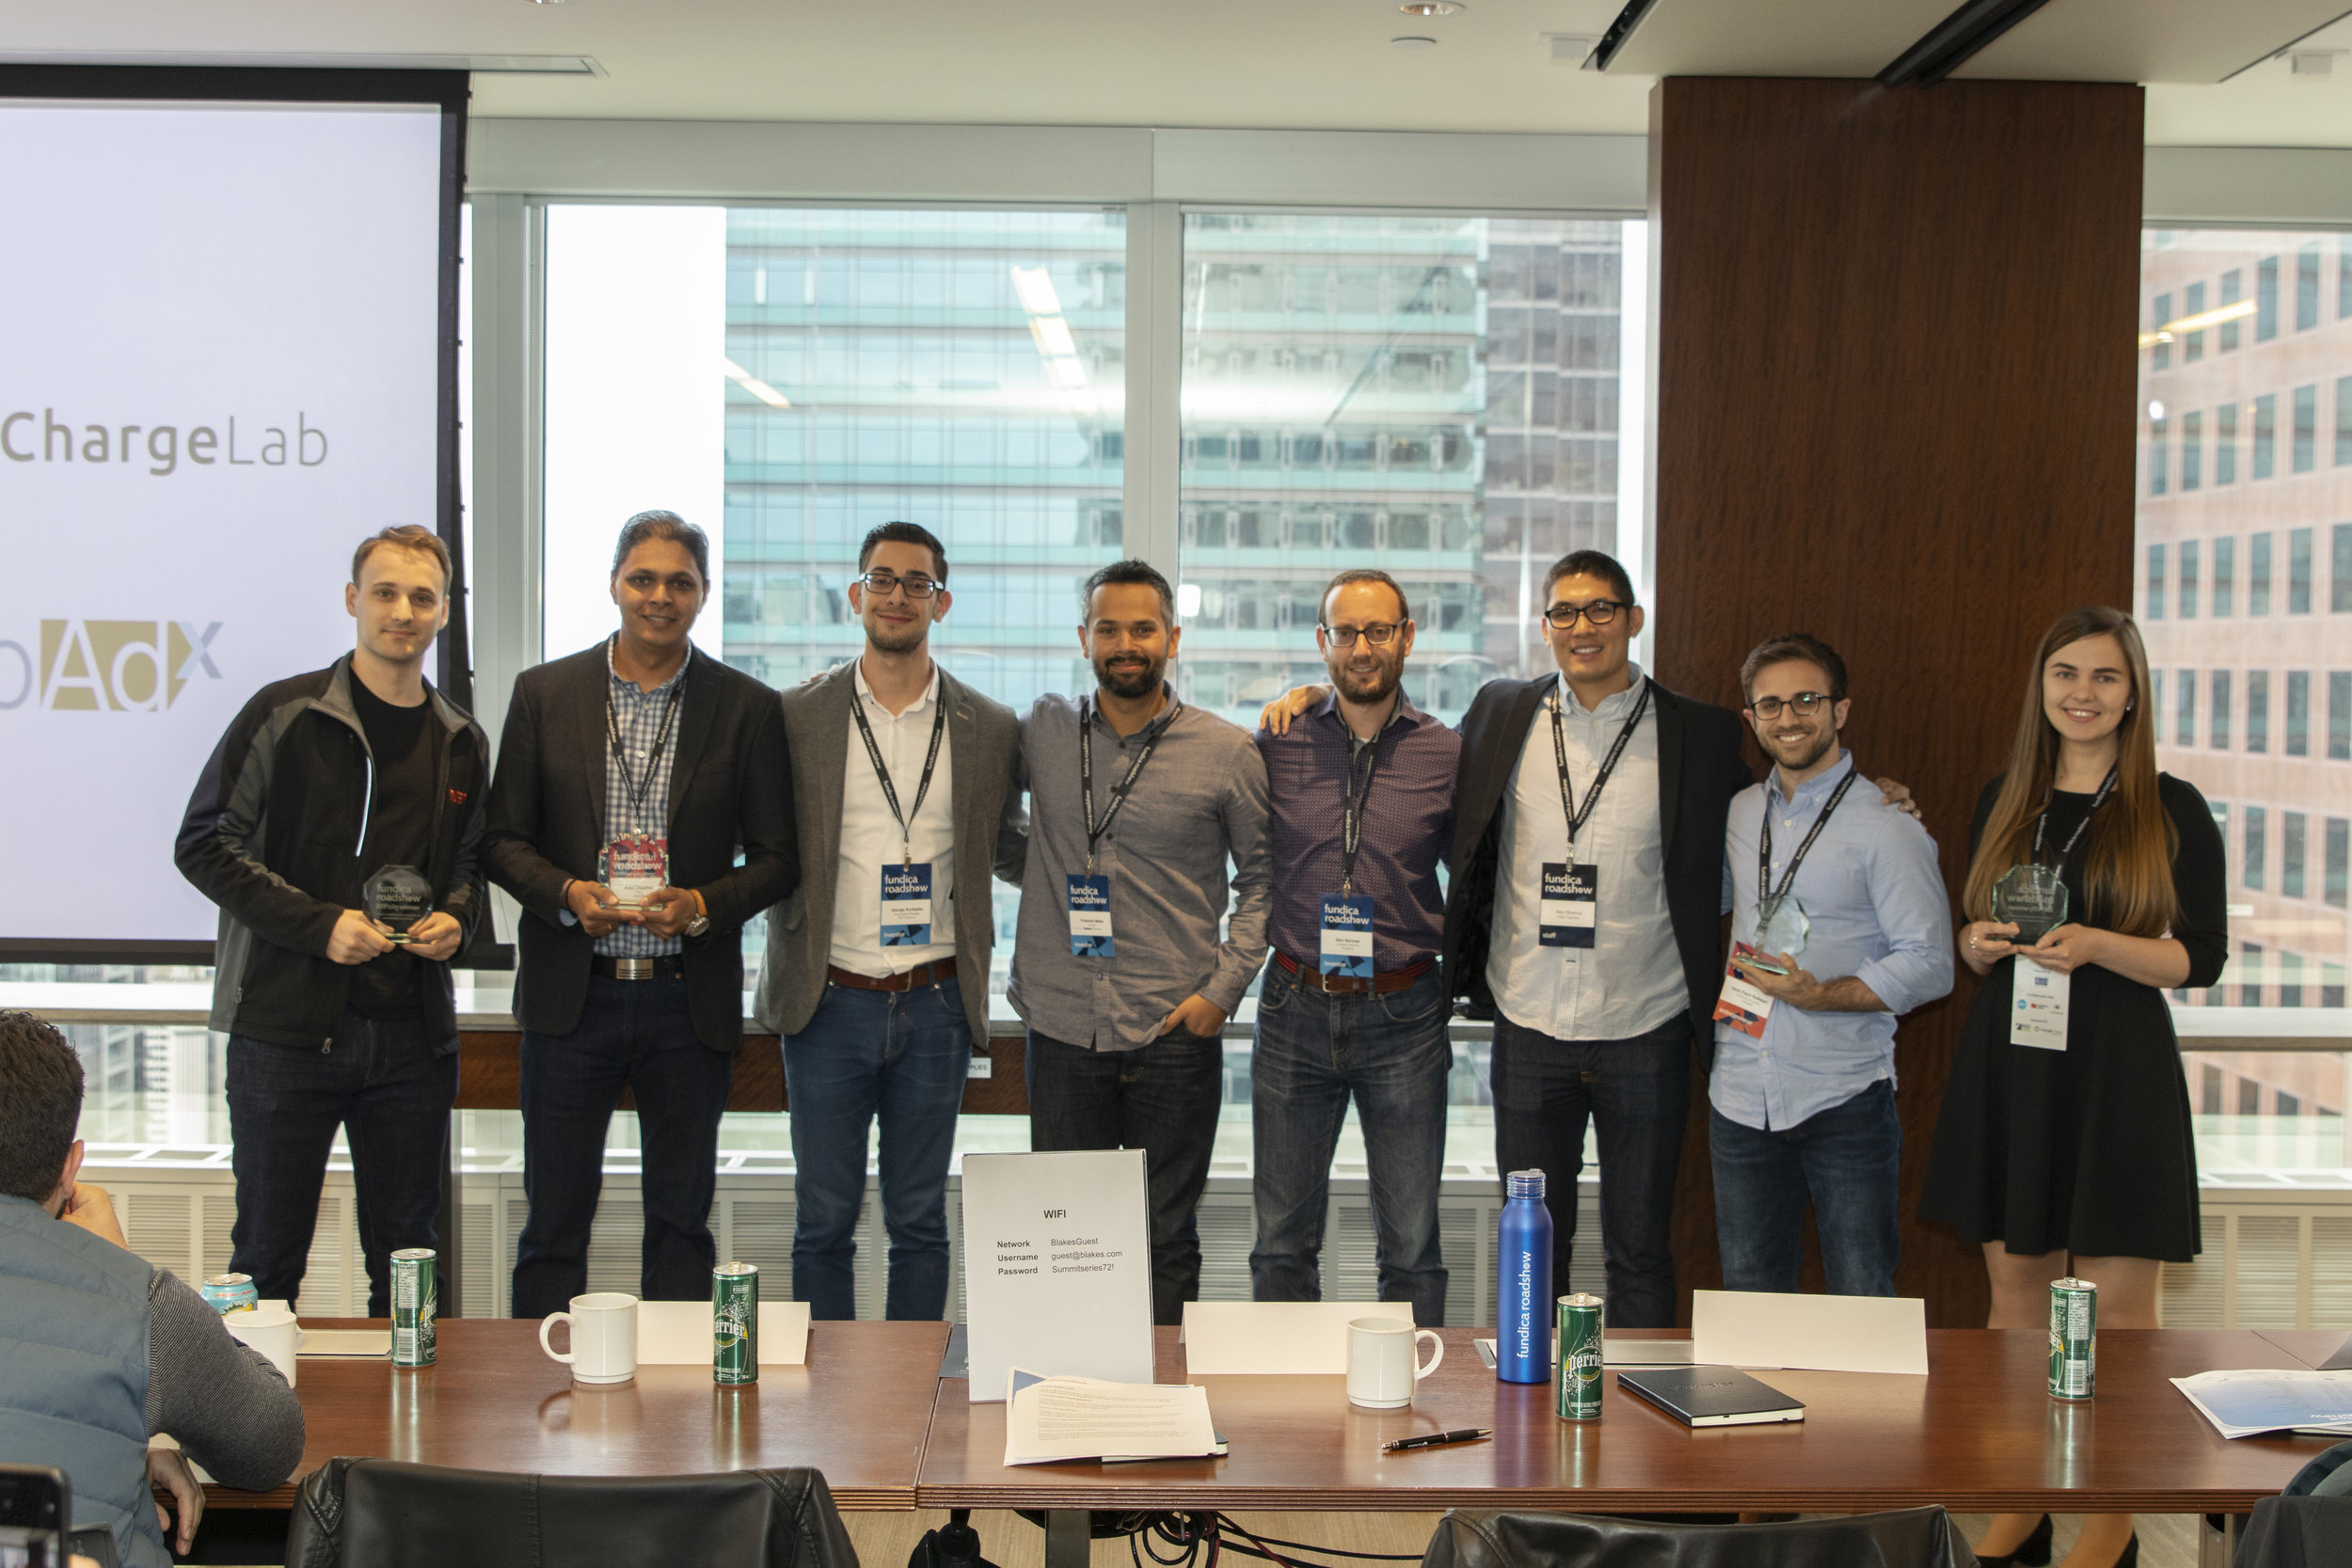 Our Toronto city winners posing alongside the Fundica Roadshow investment partners. From left to right: Zachary Lefevre of ChargeLab, Amit Chauhan of JobAdx, George Korkejian of BCF Ventures, Prashant Matta of Panache Ventures, Alex Norman of AngelList, Alex Bramos of R&D Partners, Zack Fisch Rothbart of CoHealth, and Nataliia Tsok of Tryon.